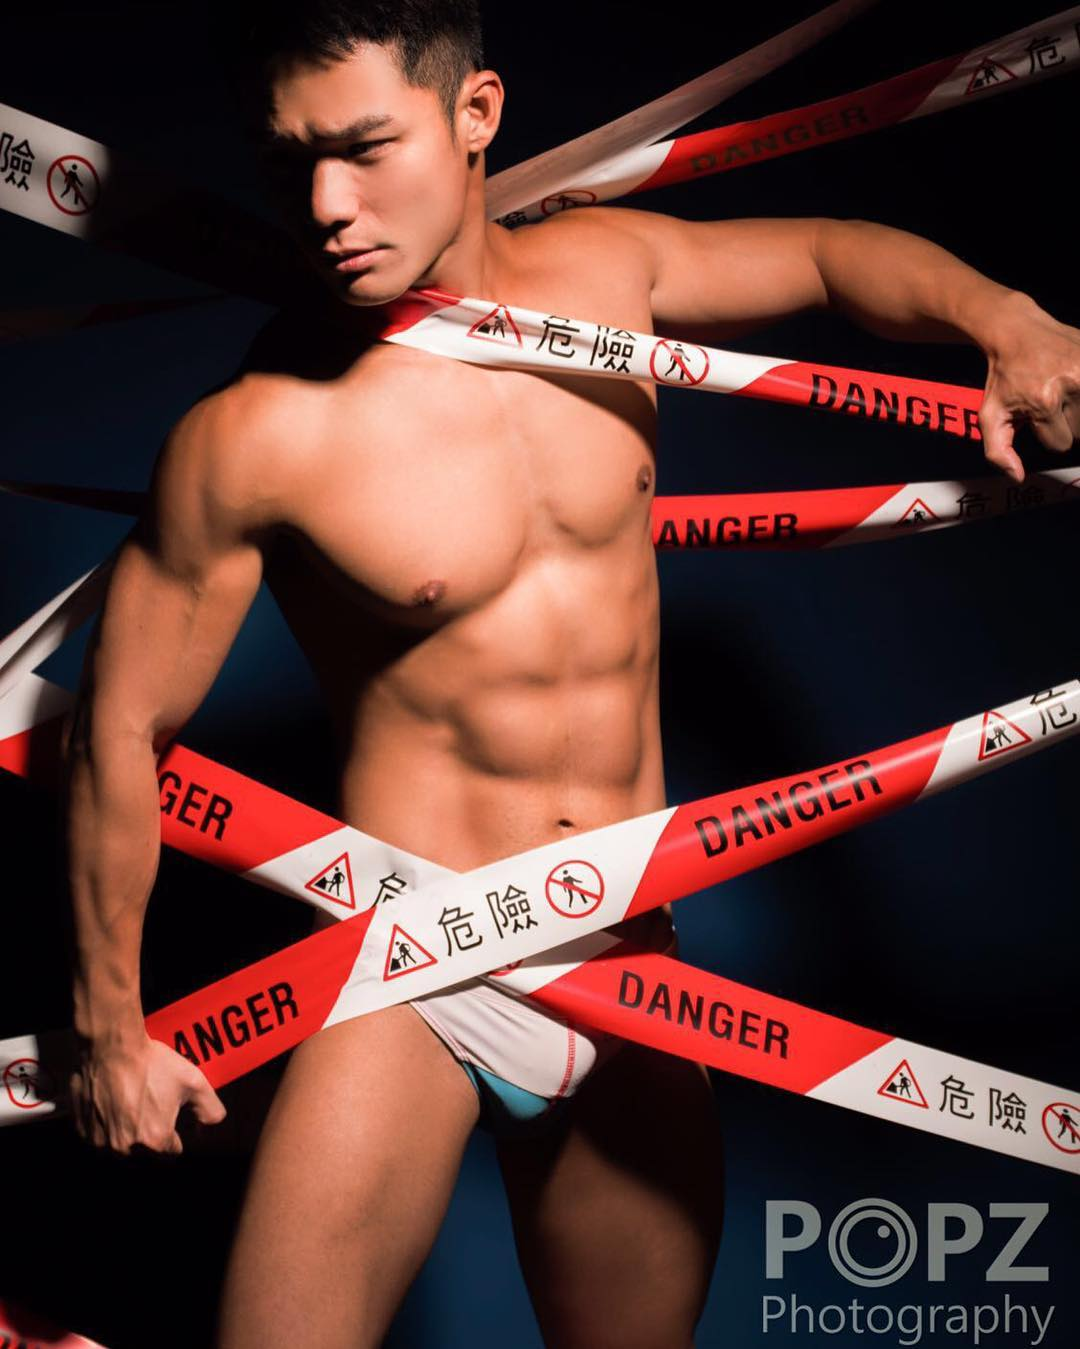 bachelor-of-the-week-from-hong-kong-china-asias-largest-gay-travel-guide-for-gay-hotels-gay-bars-and-saunas-2-1